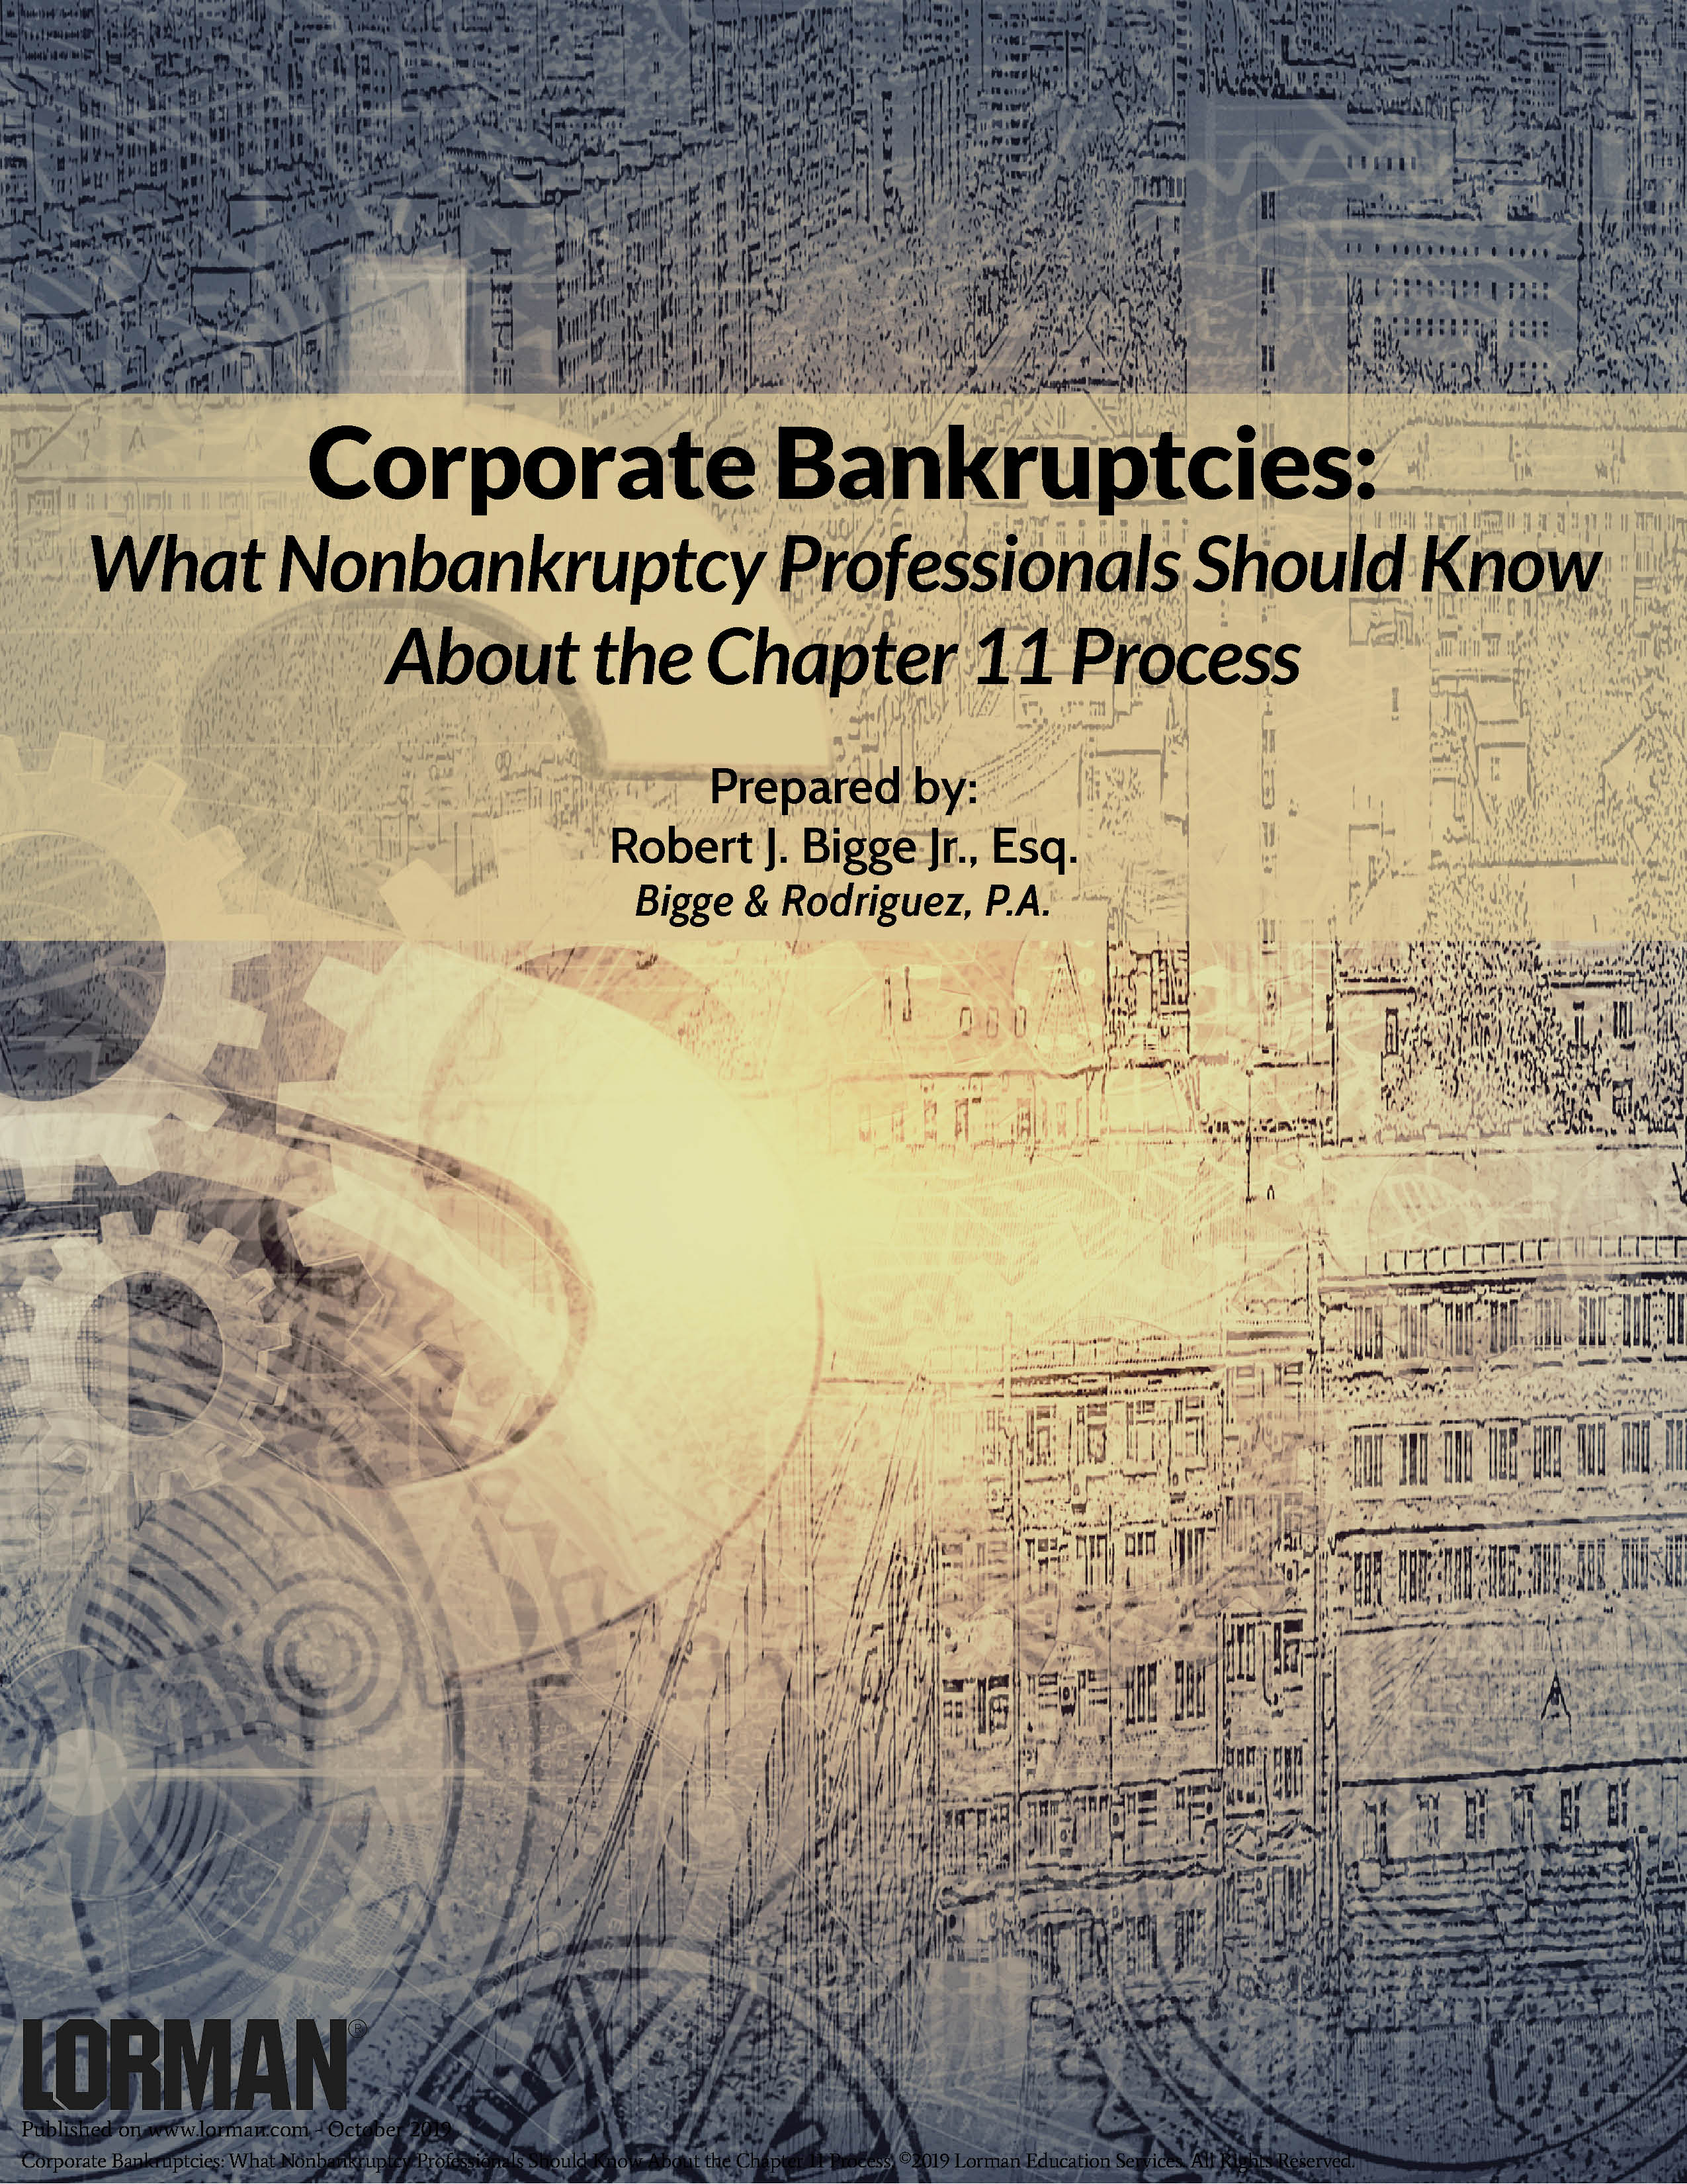 Corporate Bankruptcies